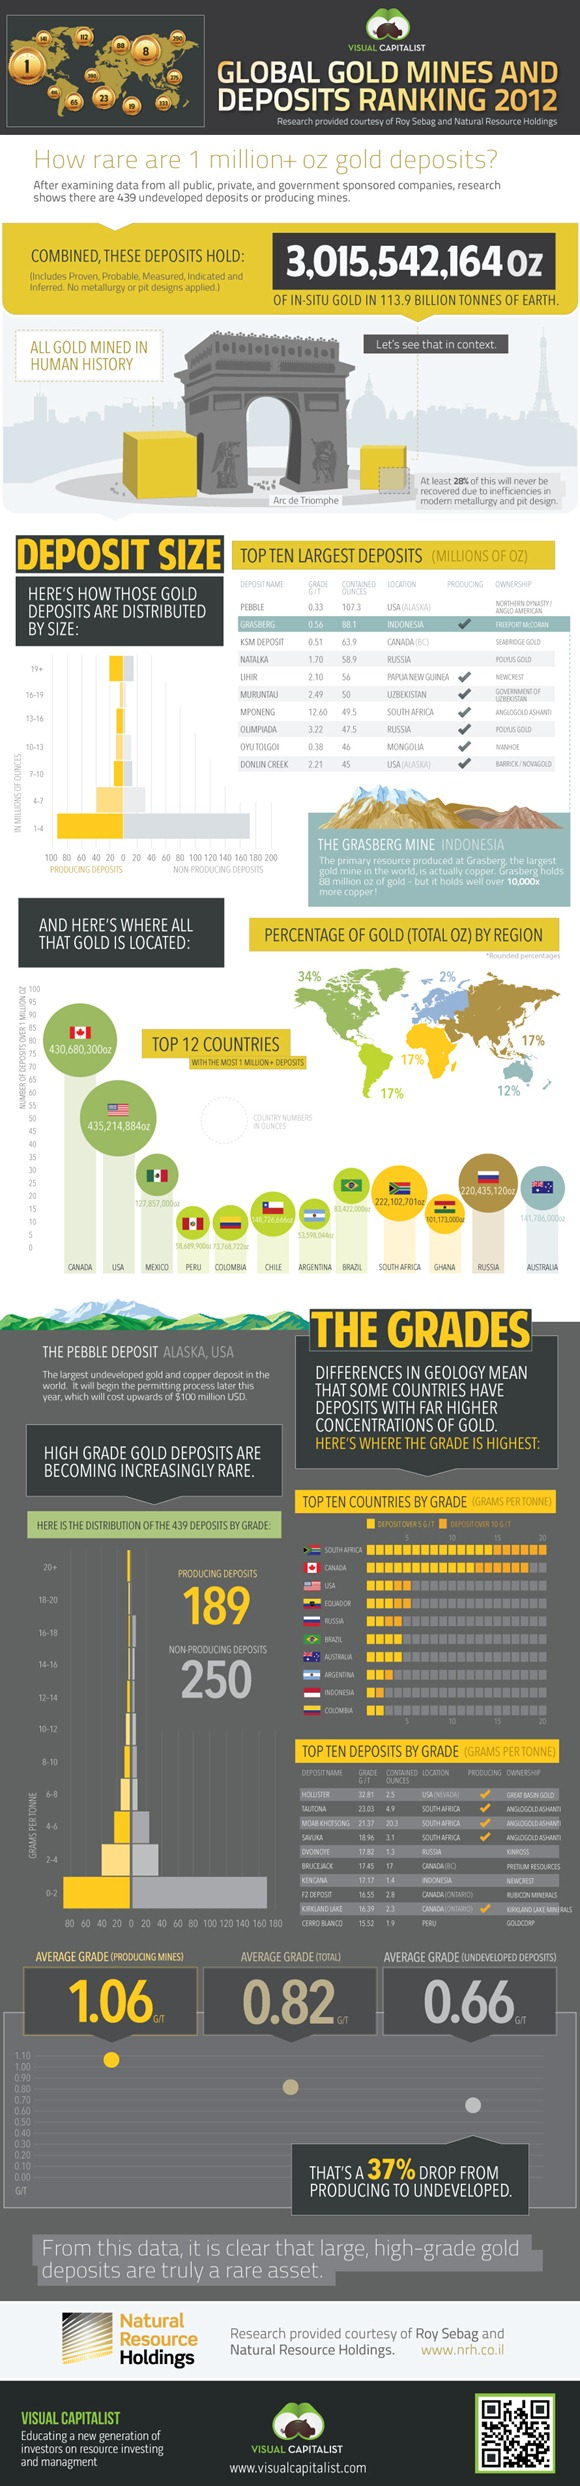 gold-mines-deposits-ranking-2012-infographic